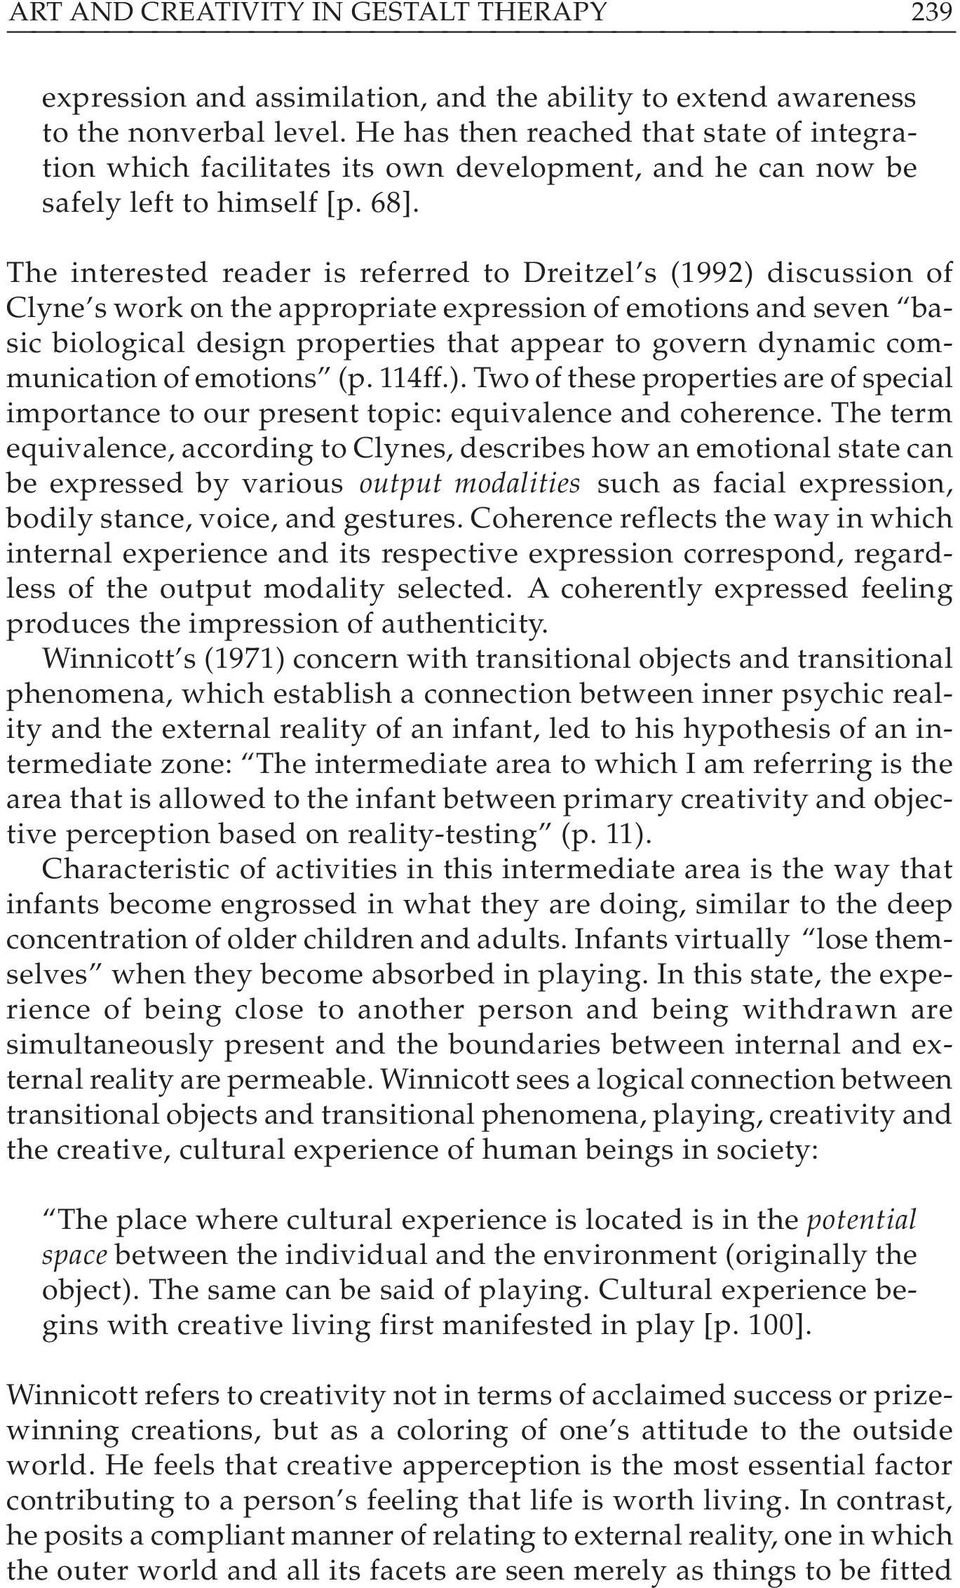 The interested reader is referred to Dreitzel s (1992) discussion of Clyne s work on the appropriate expression of emotions and seven basic biological design properties that appear to govern dynamic